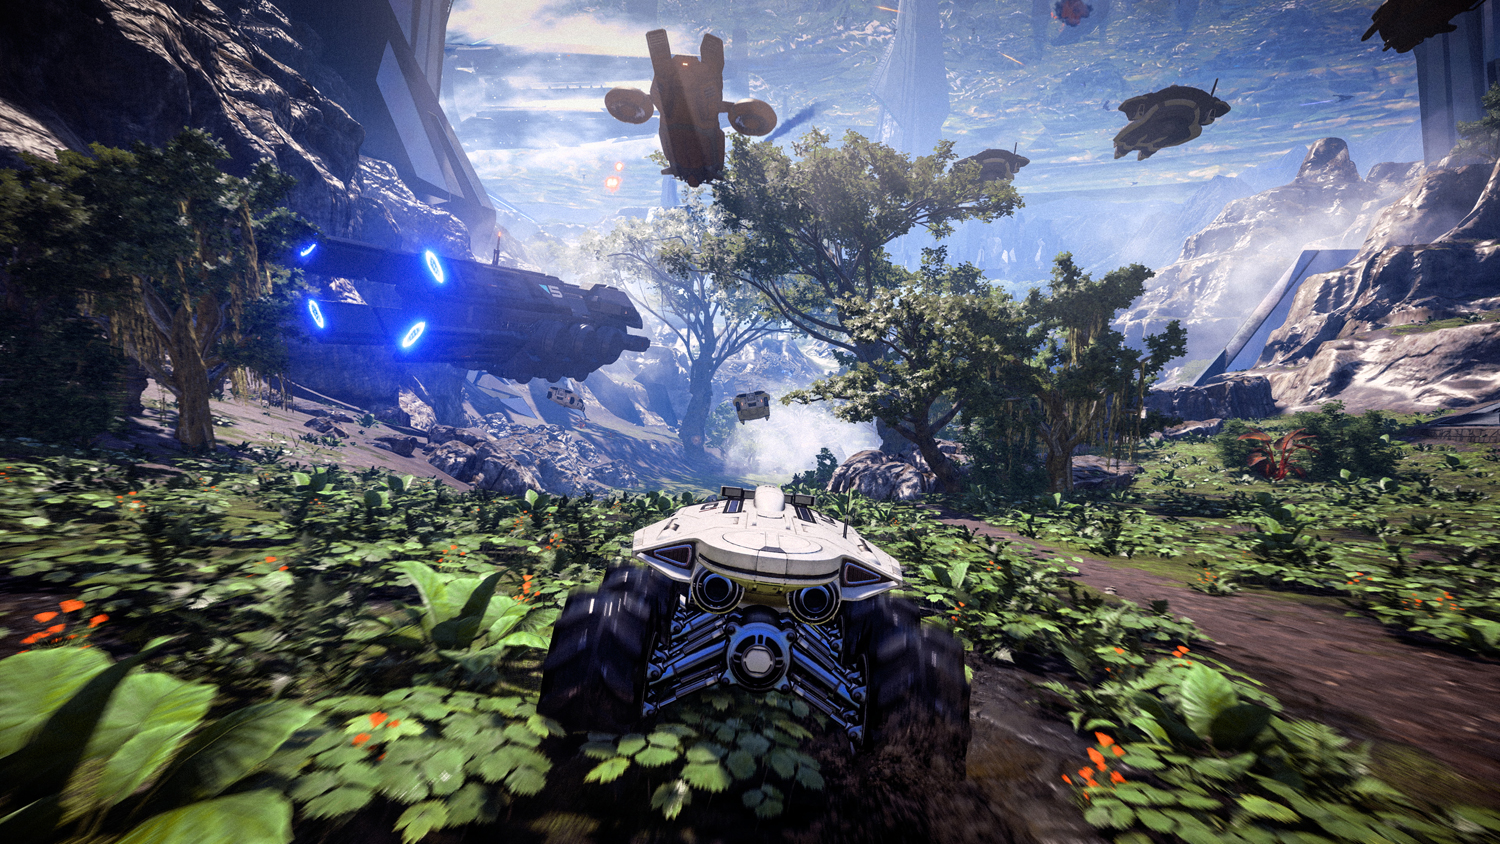 Mass Effectandromeda Mass Effect Andromeda Was Once A Giant Procedural Game Reveals